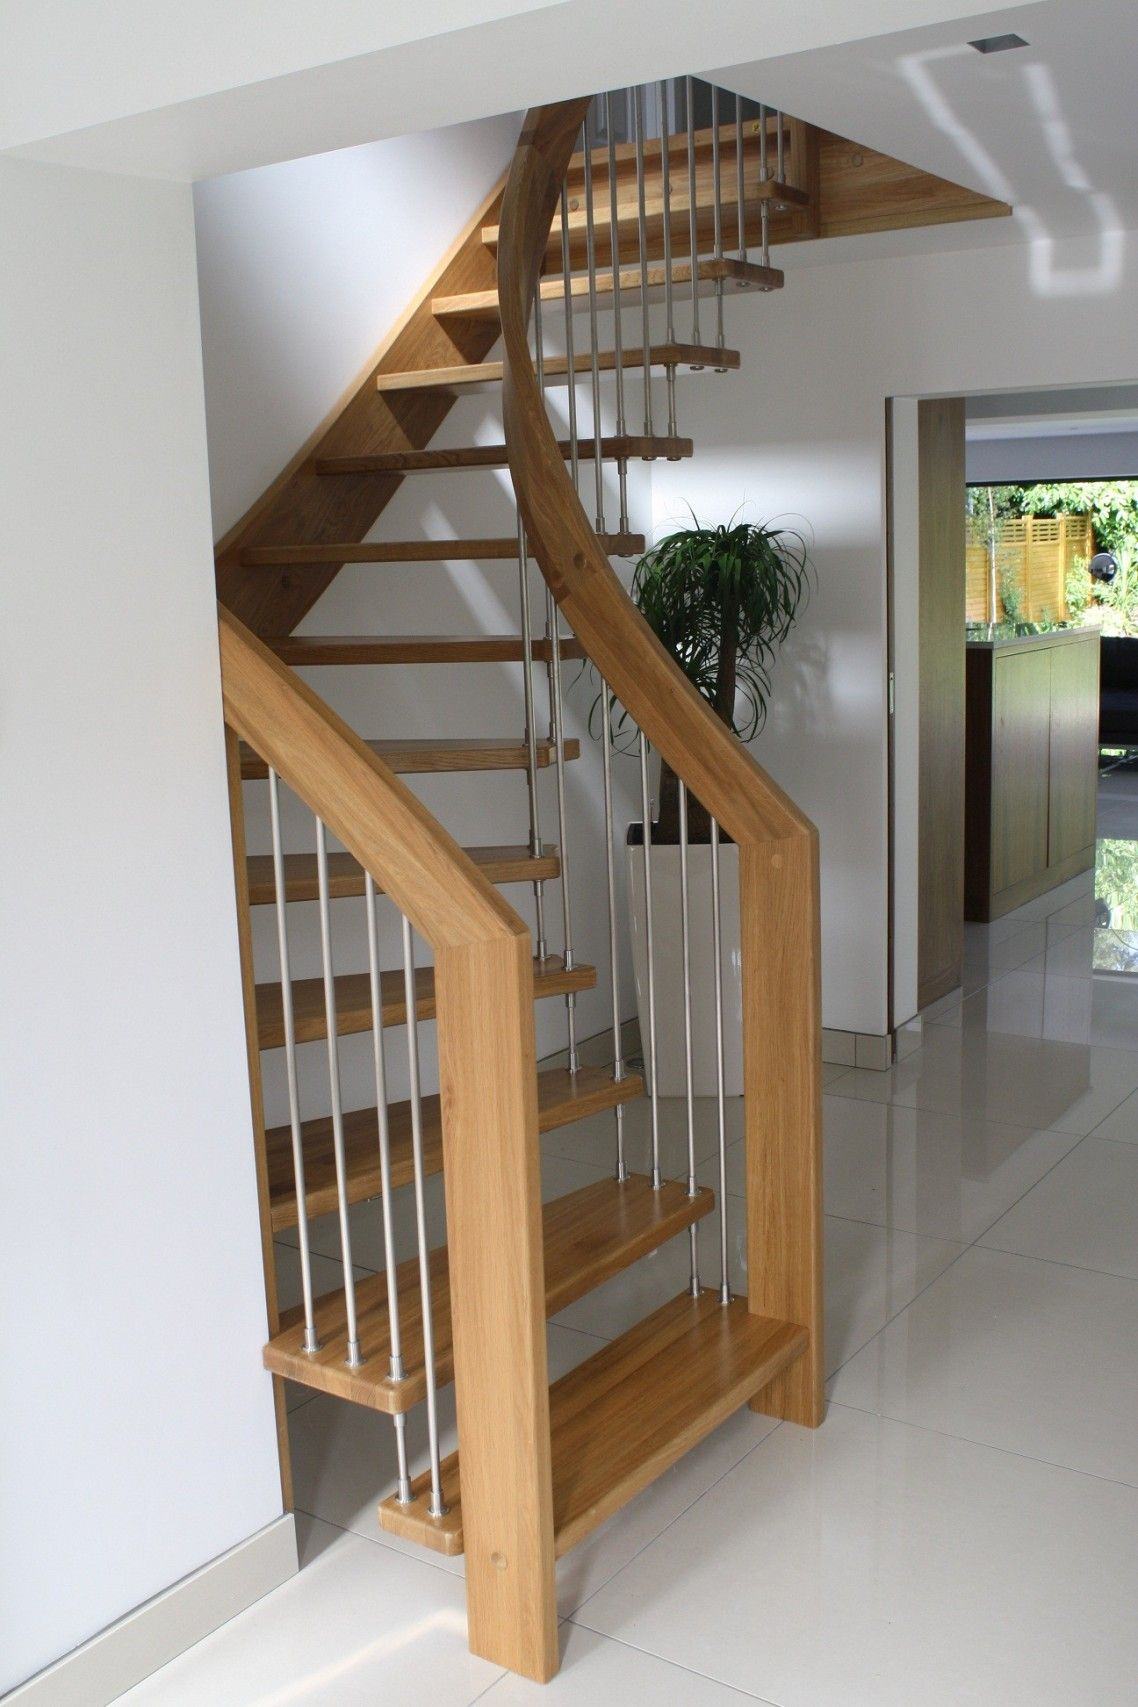 Alluring Design Ideas Of Small Space Staircase With Brown Wooden   Space Saving Staircases For Small Homes   Design   Attic Ladder   Wood   Ladder   Loft Stairs